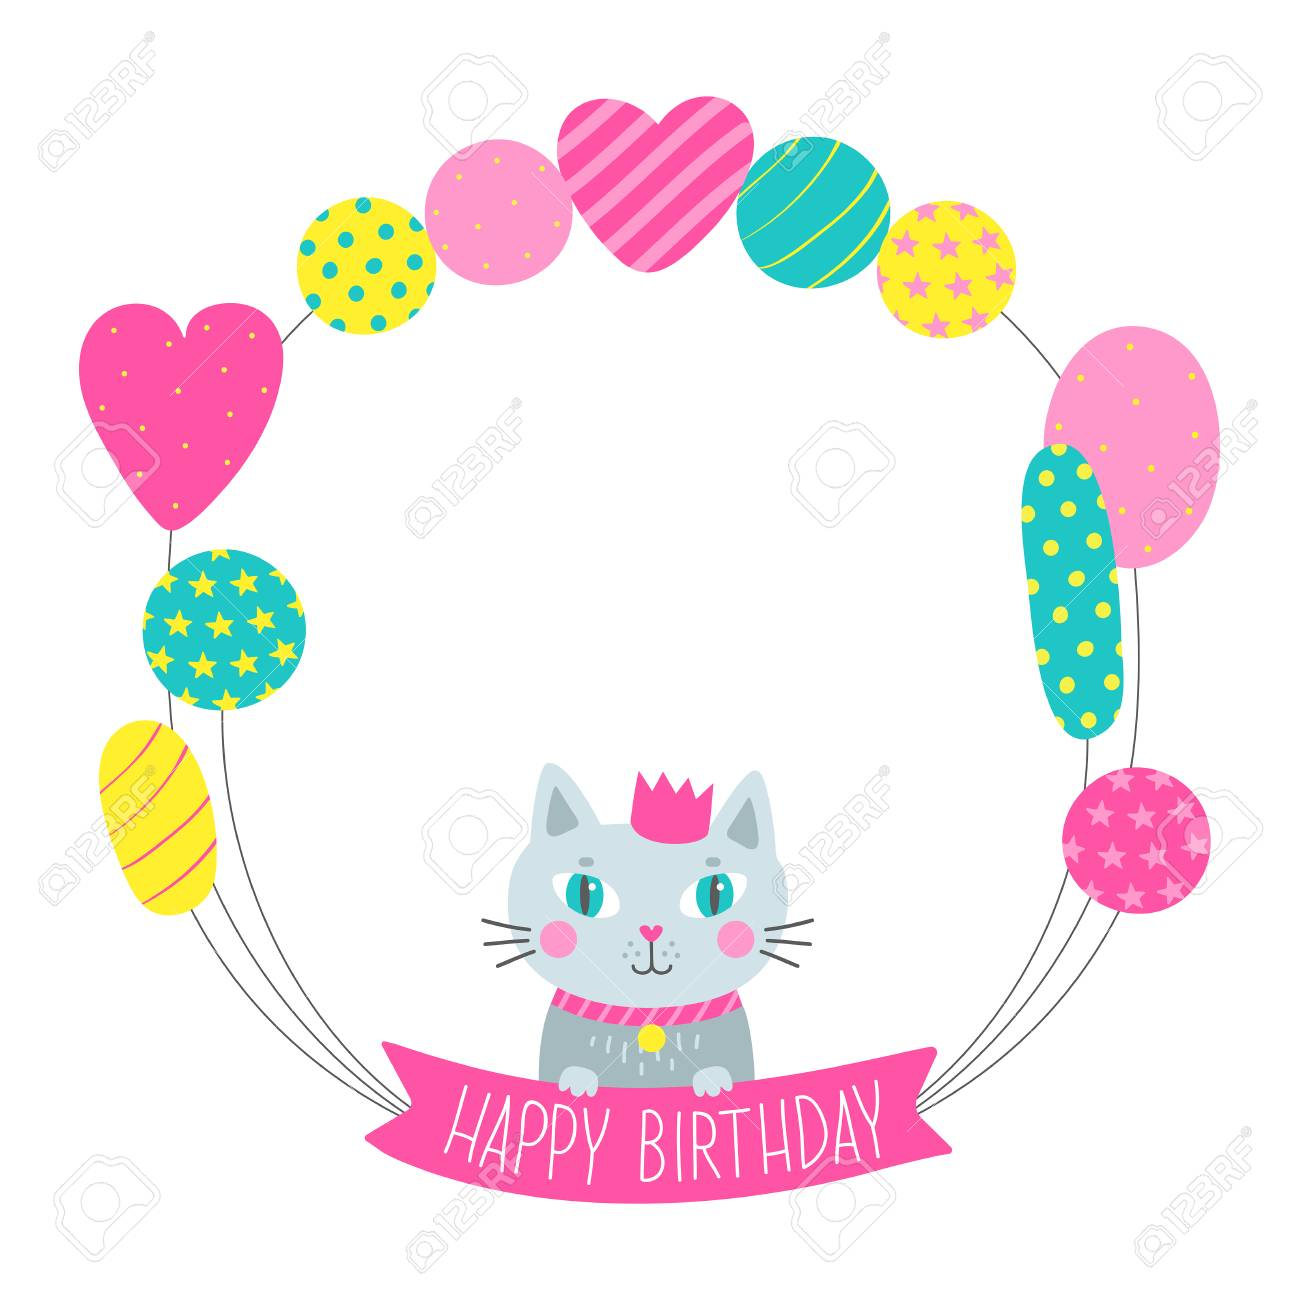 Greeting Card With Balloons And Cute Cat Vector Illustration For